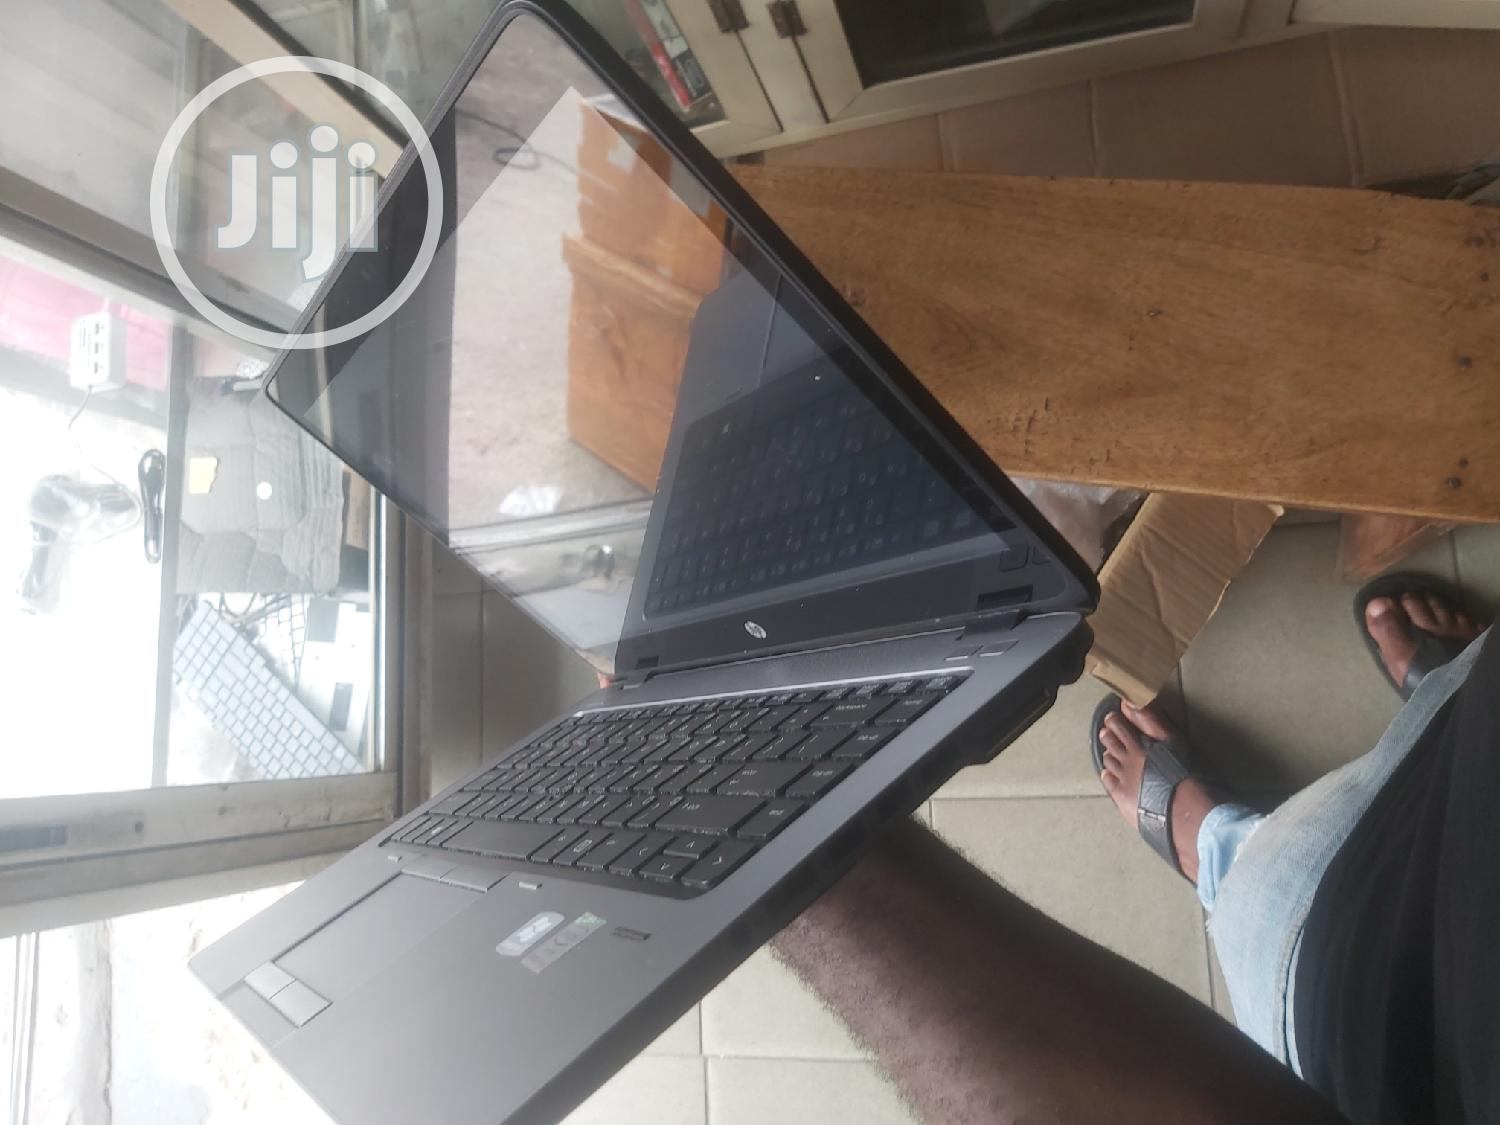 Laptop HP EliteBook 840 G1 4GB Intel Core I7 HDD 500GB | Laptops & Computers for sale in Ikeja, Lagos State, Nigeria